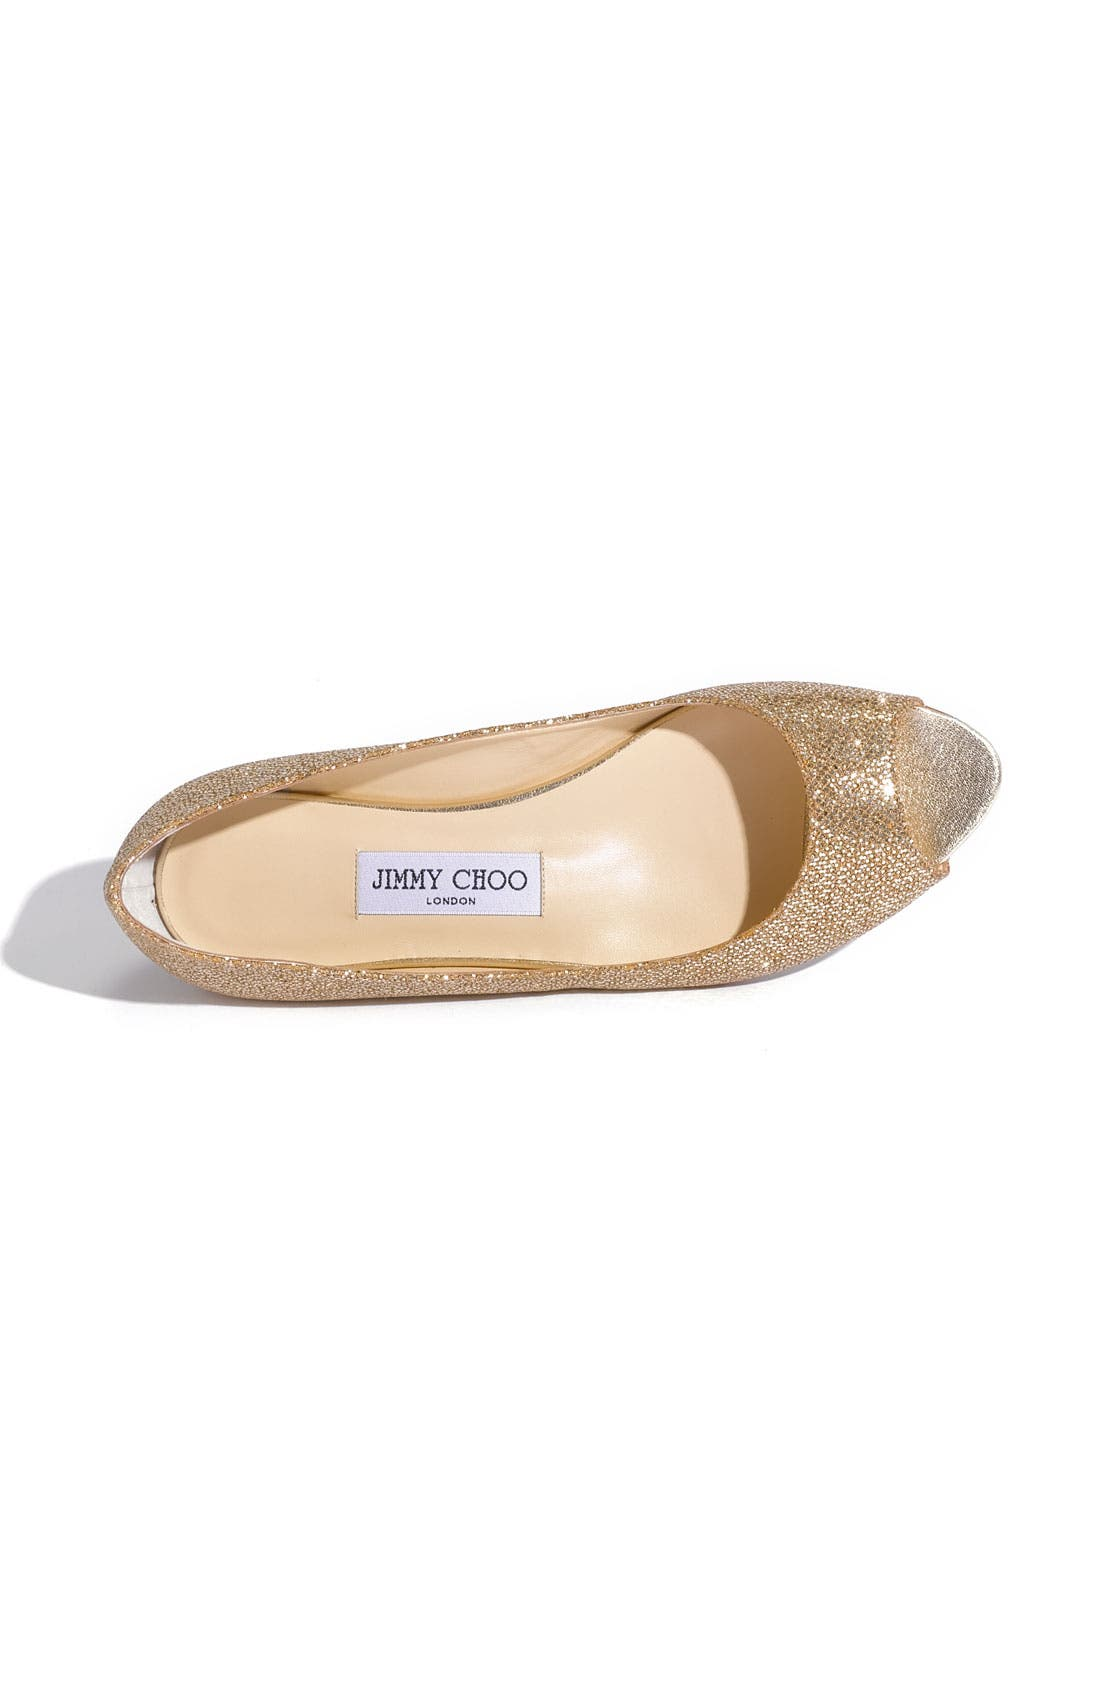 Alternate Image 3  - Jimmy Choo 'Beck' Wedge Flat